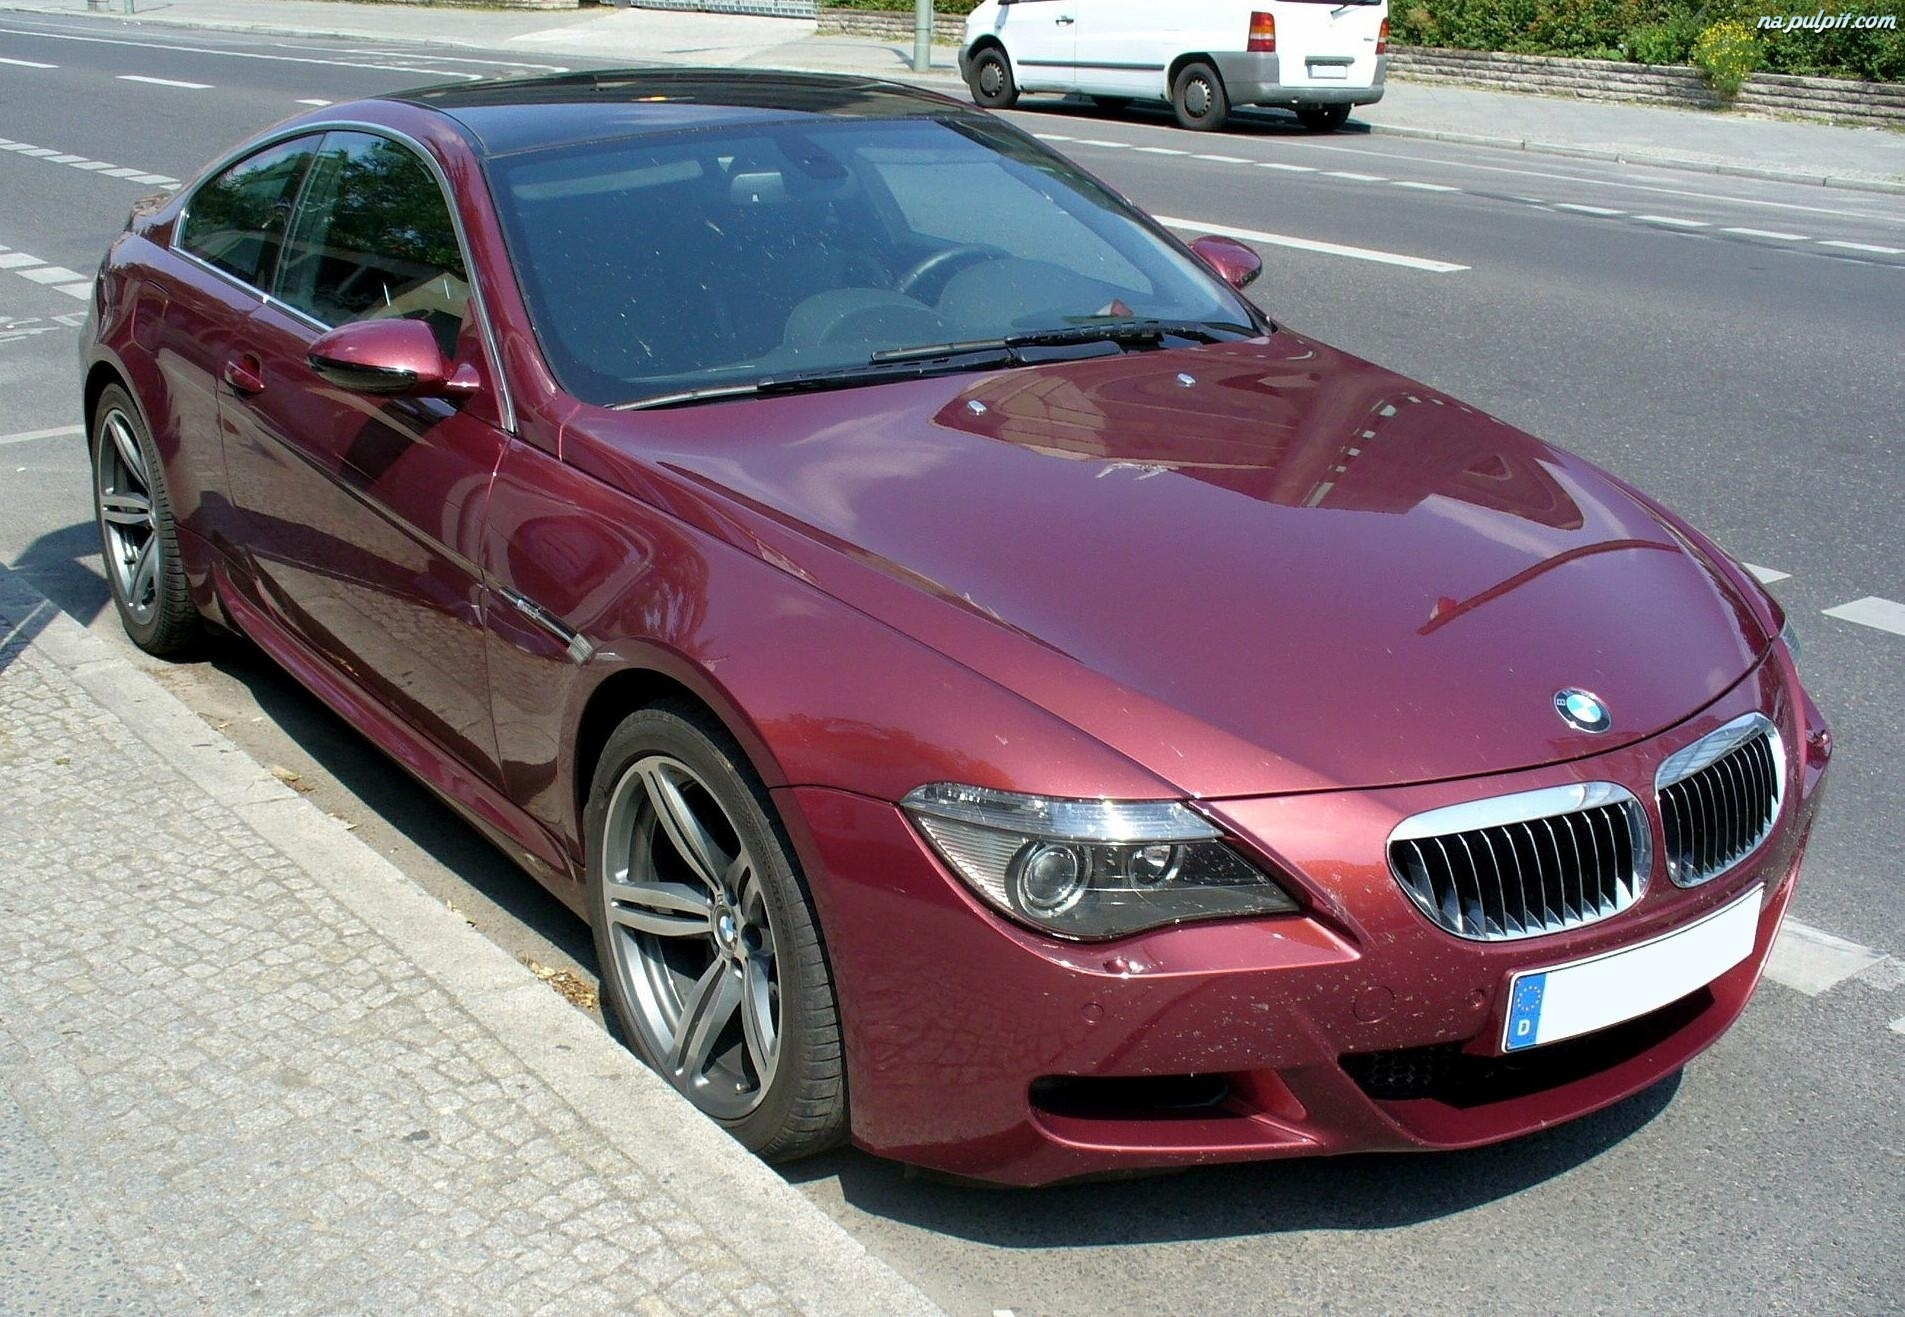 E65, Metalik, Bordowy, BMW 7